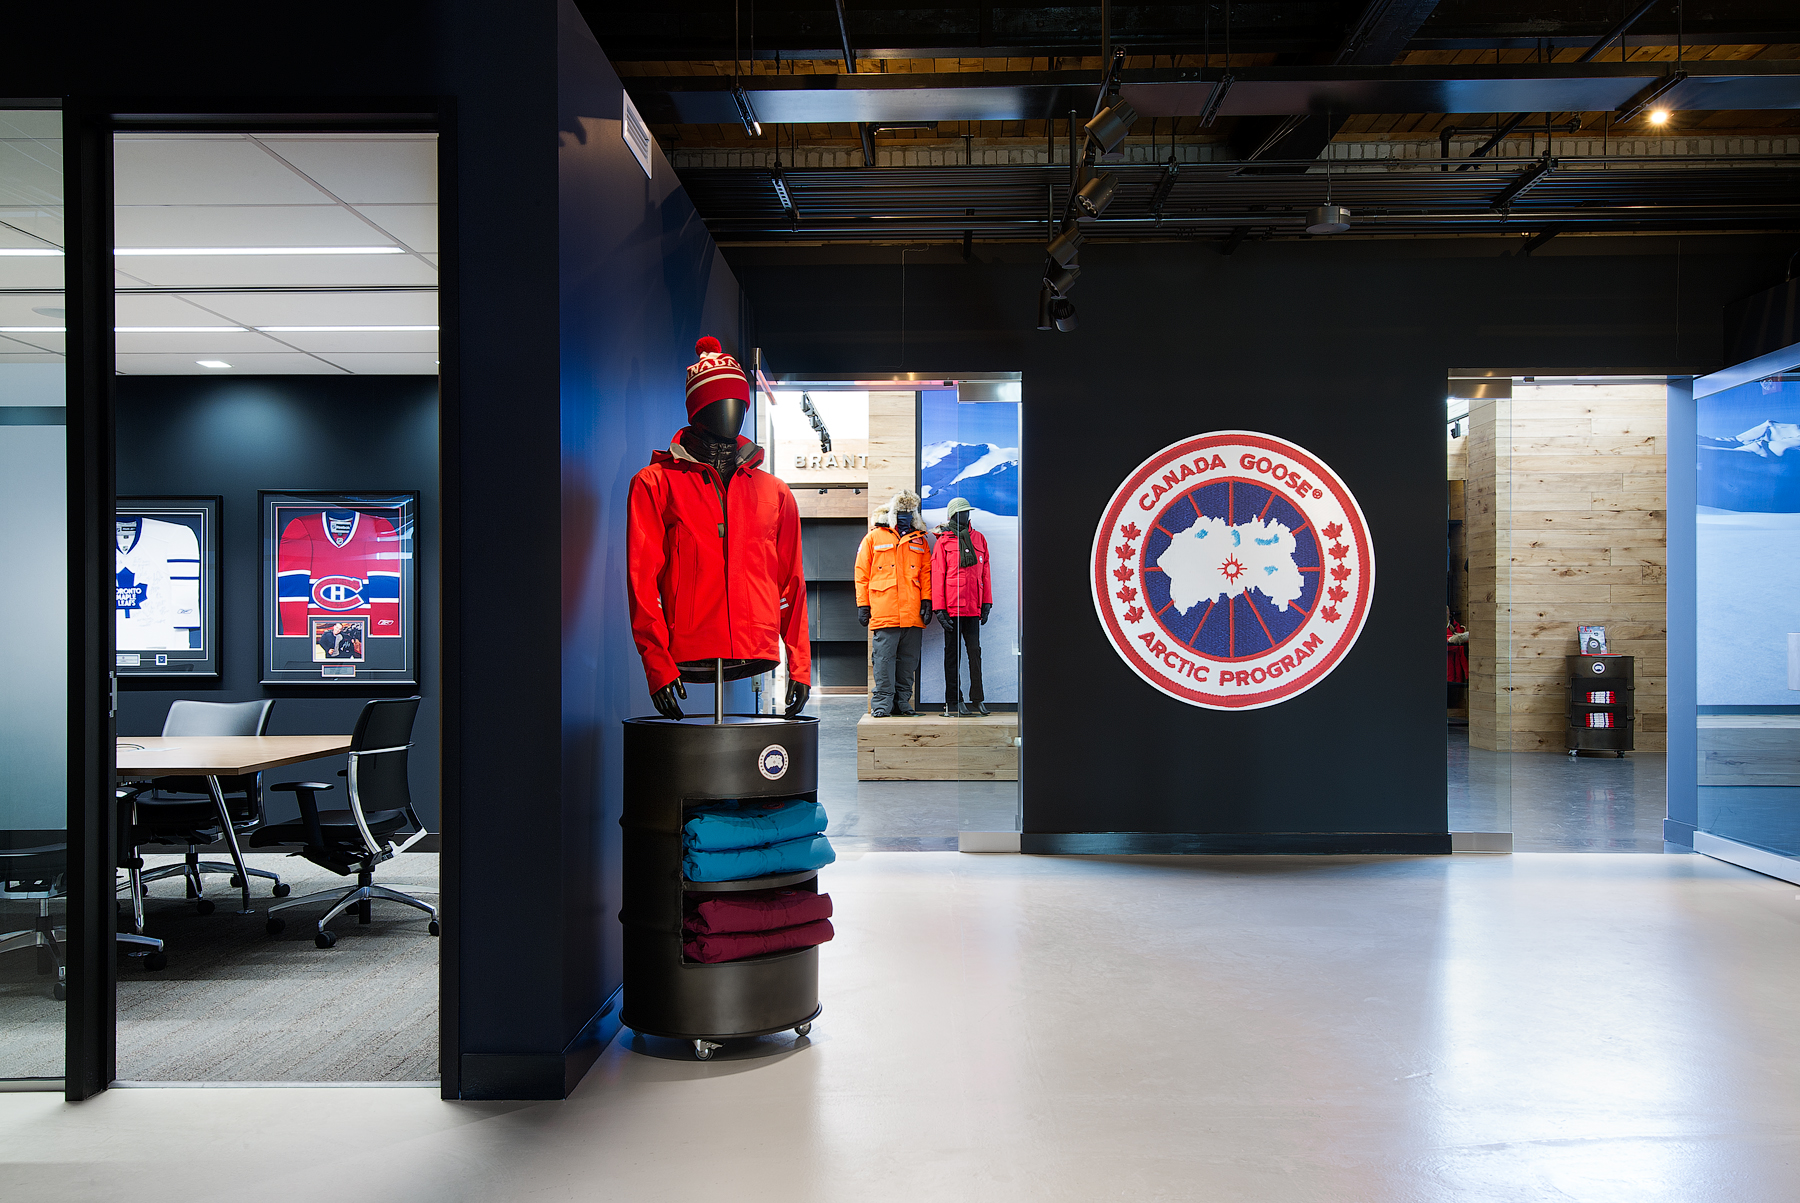 Canada Goose open area with black walls, Canada Goose logo on wall, and mannequin wearing red coat